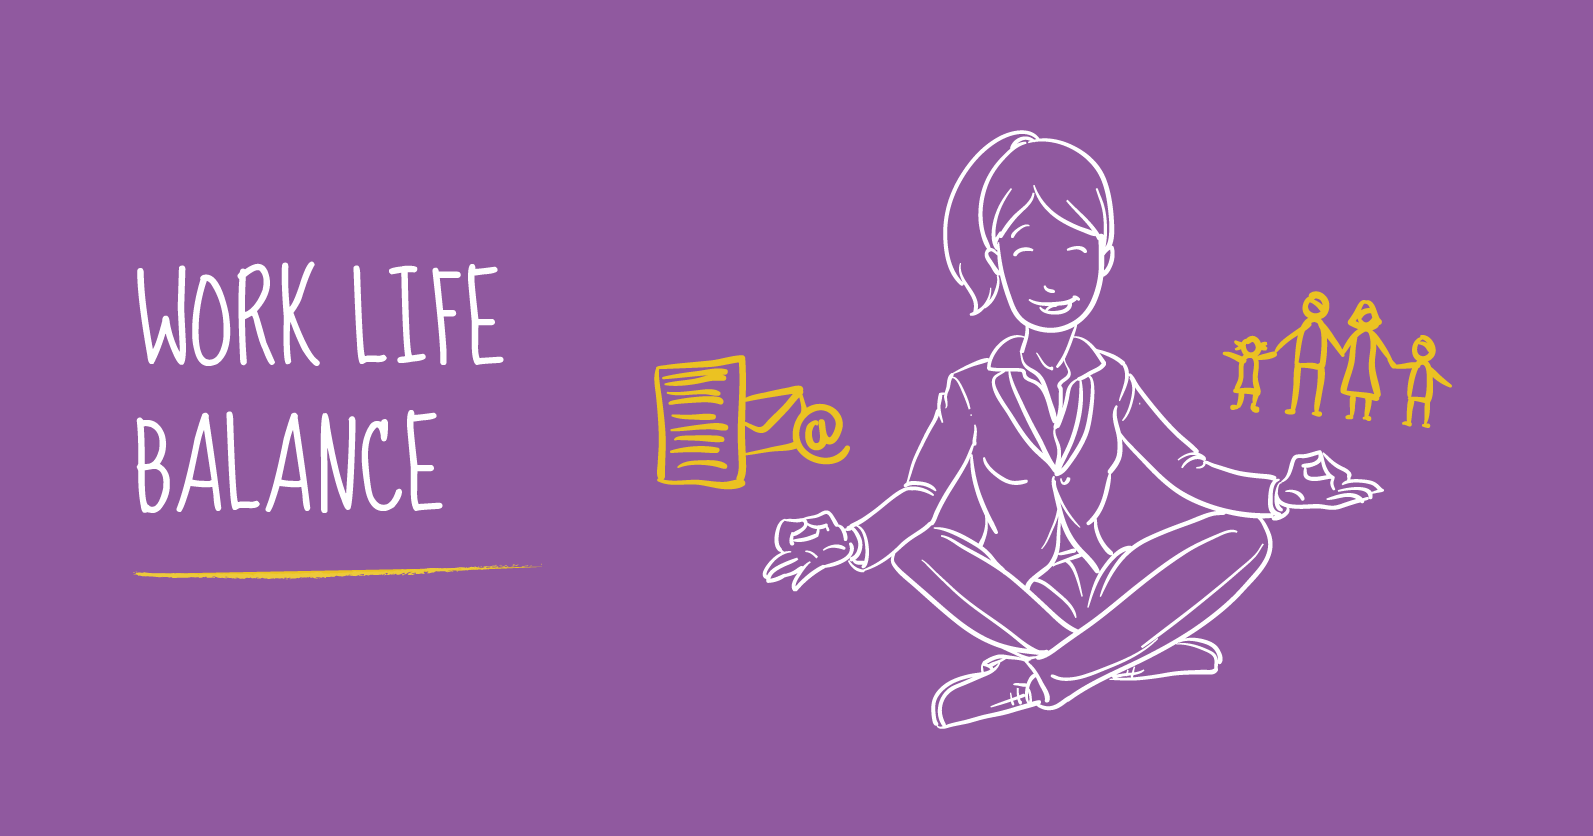 work life balance managment The growing interest of human resource management to provide employees a proper work-life balance has become an essential part of the recruitment process the work-life perks offered by employer can be essential in recruiting and retaining new talent.